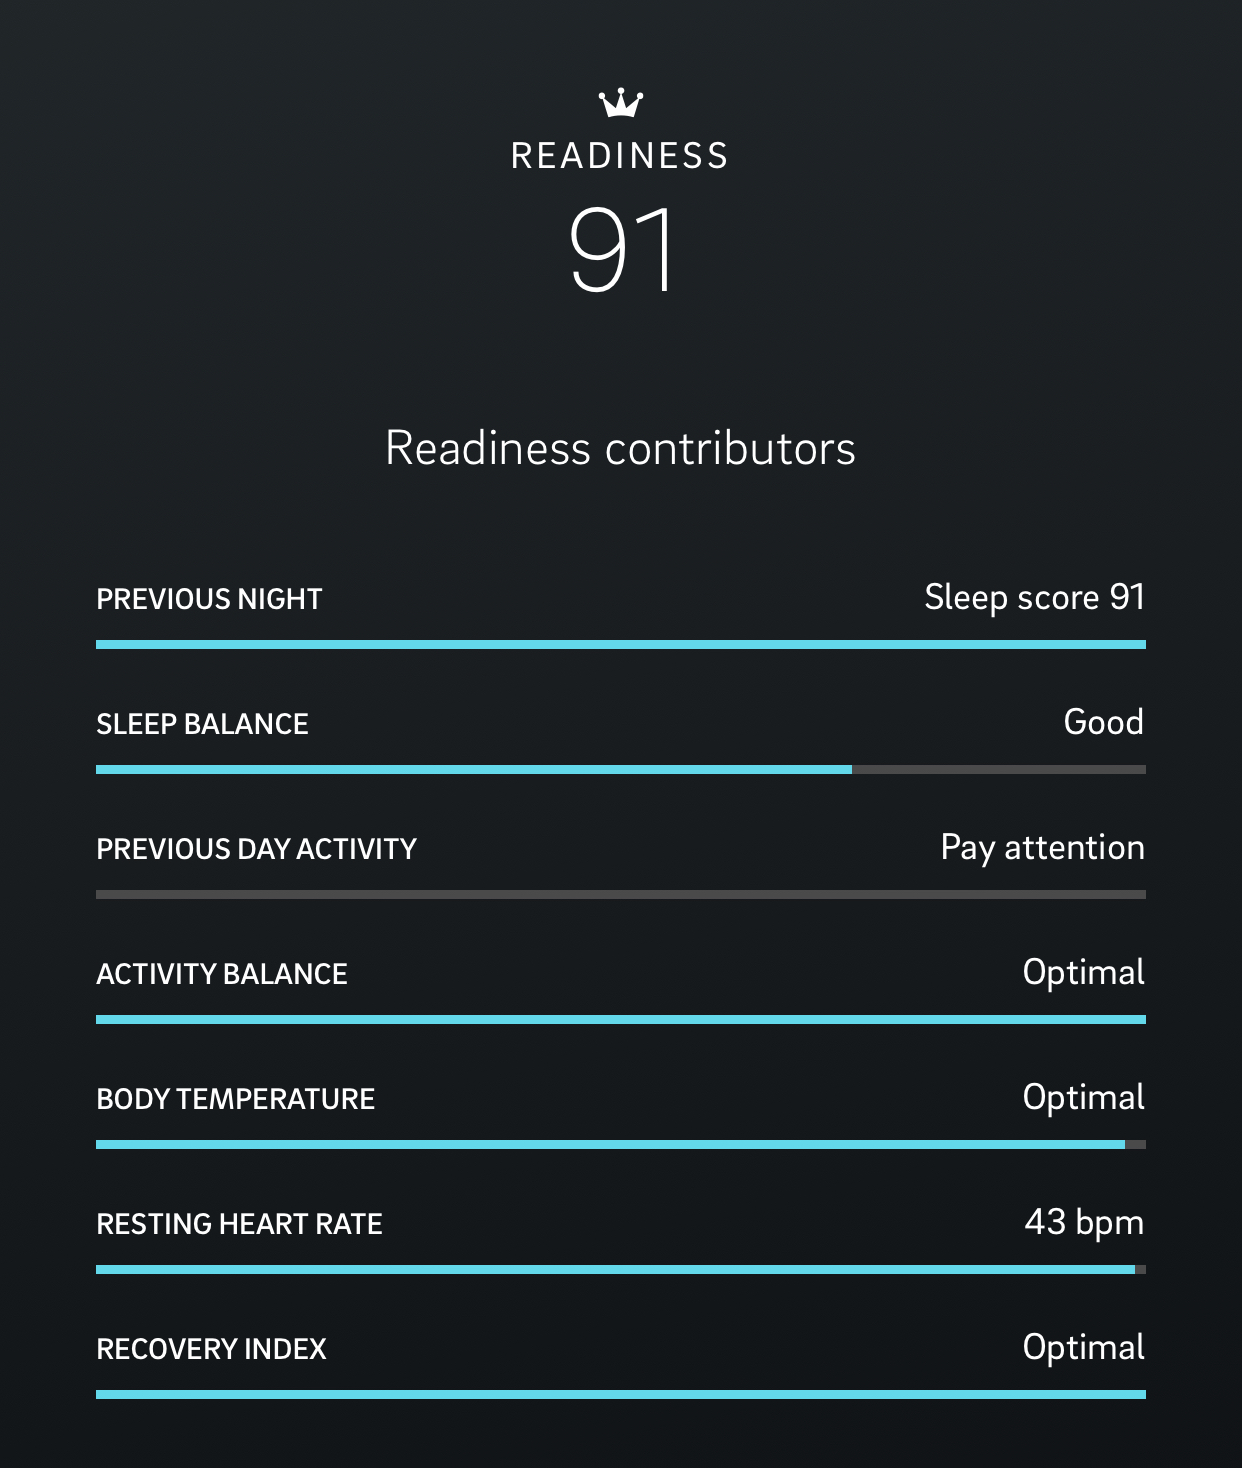 Oura Ring Readiness Score